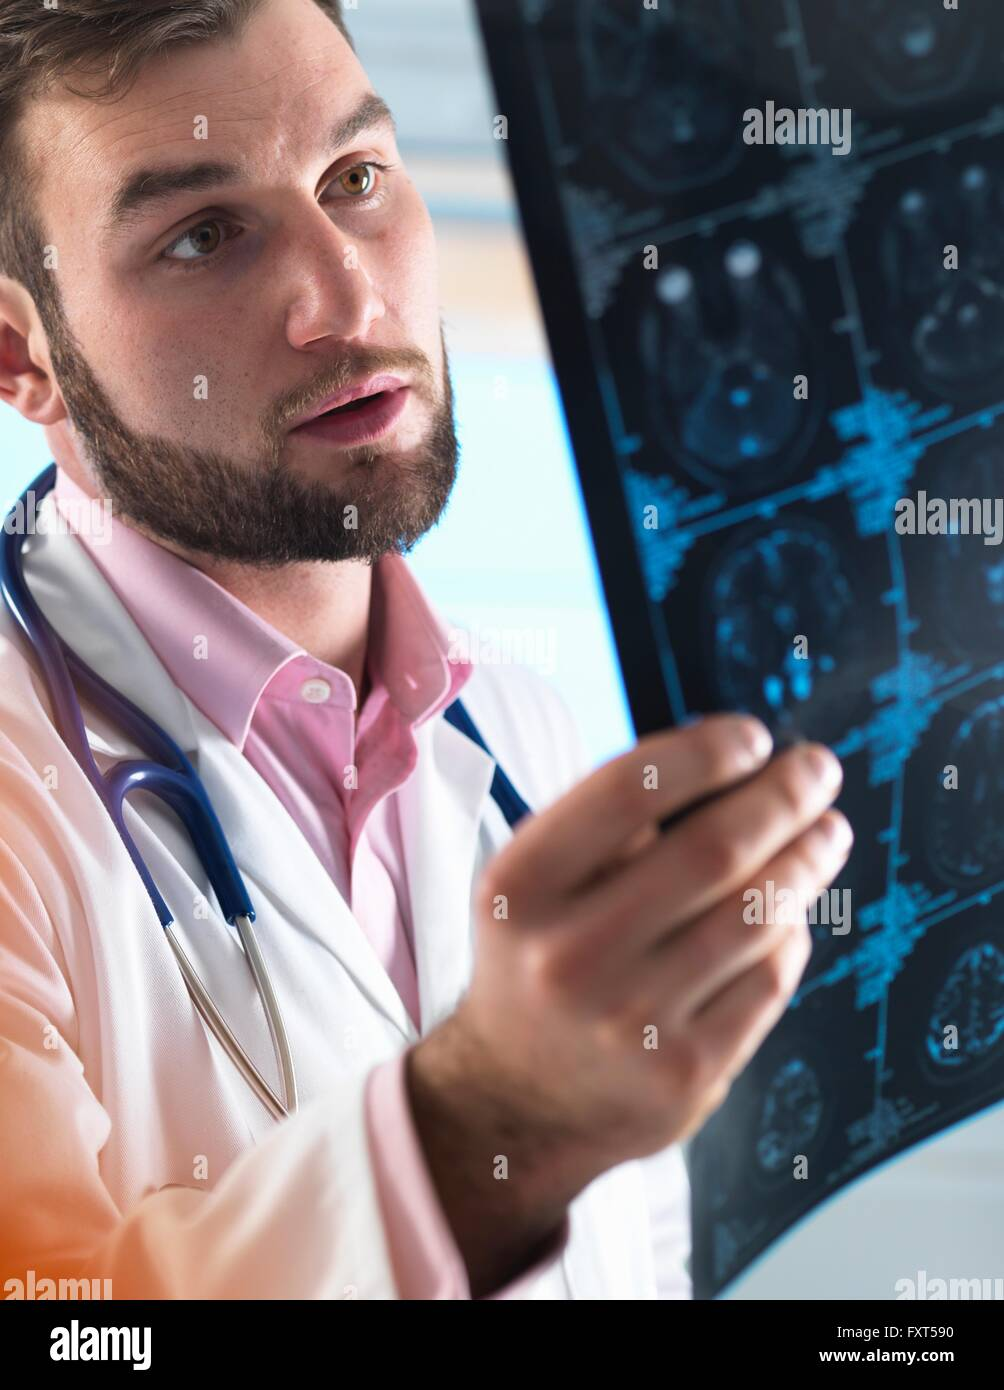 Young male junior doctor examining a brain scan in hospital - Stock Image